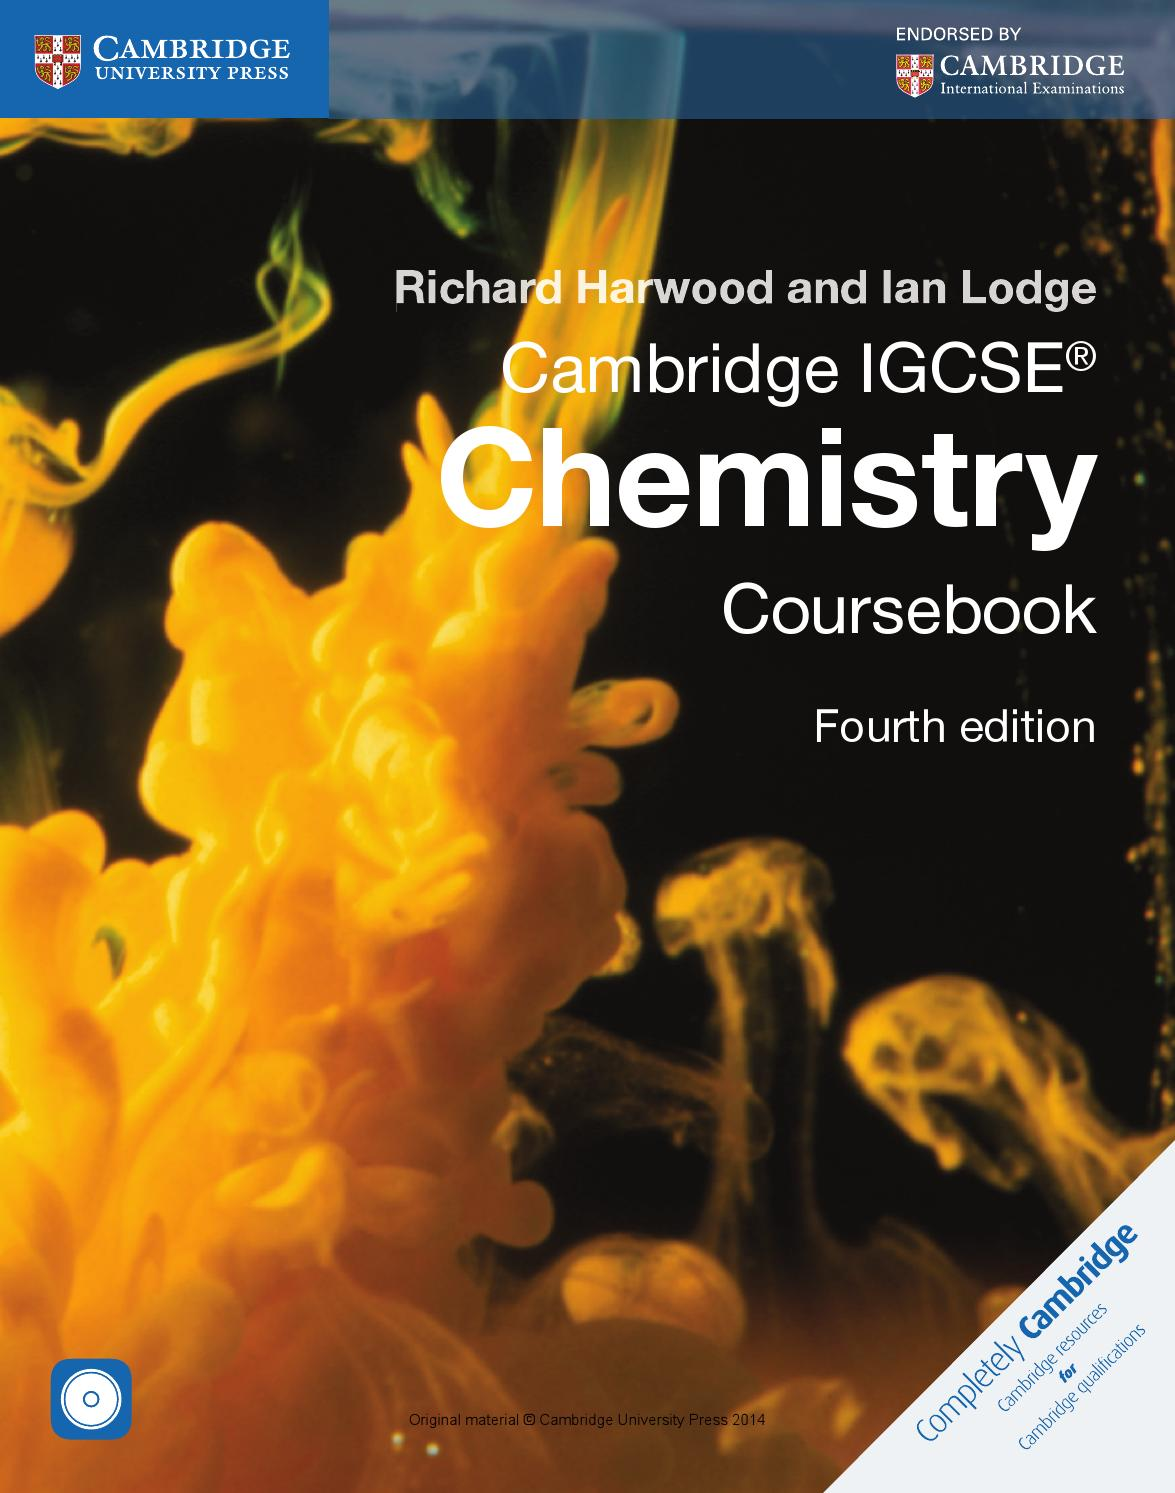 Cambridge igcse chemistry coursebook fourth edition by cambridge cambridge igcse chemistry coursebook fourth edition by cambridge university press education issuu fandeluxe Image collections